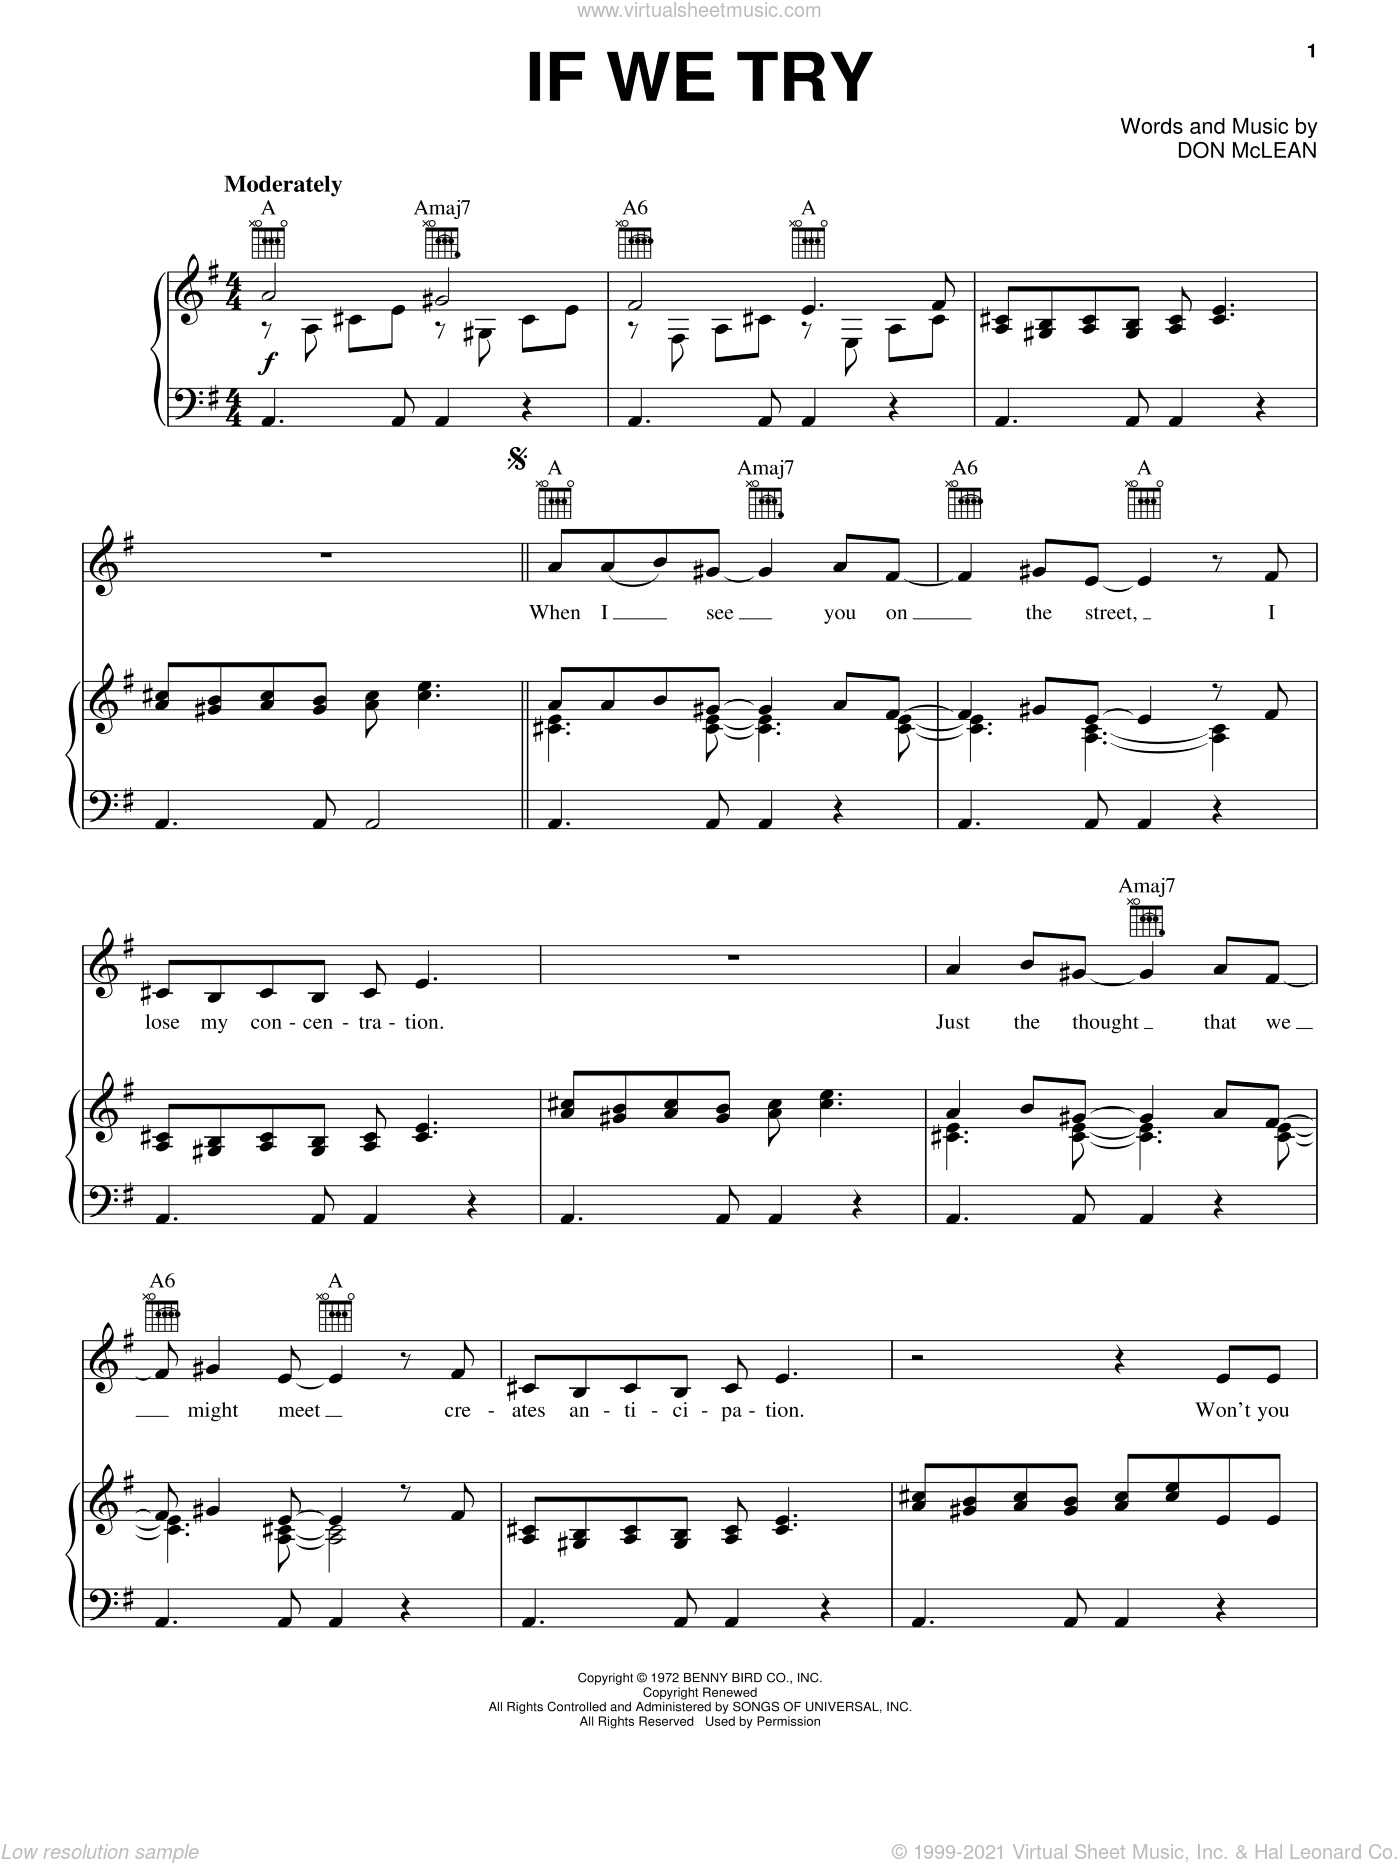 If We Try sheet music for voice, piano or guitar by Don McLean, intermediate skill level